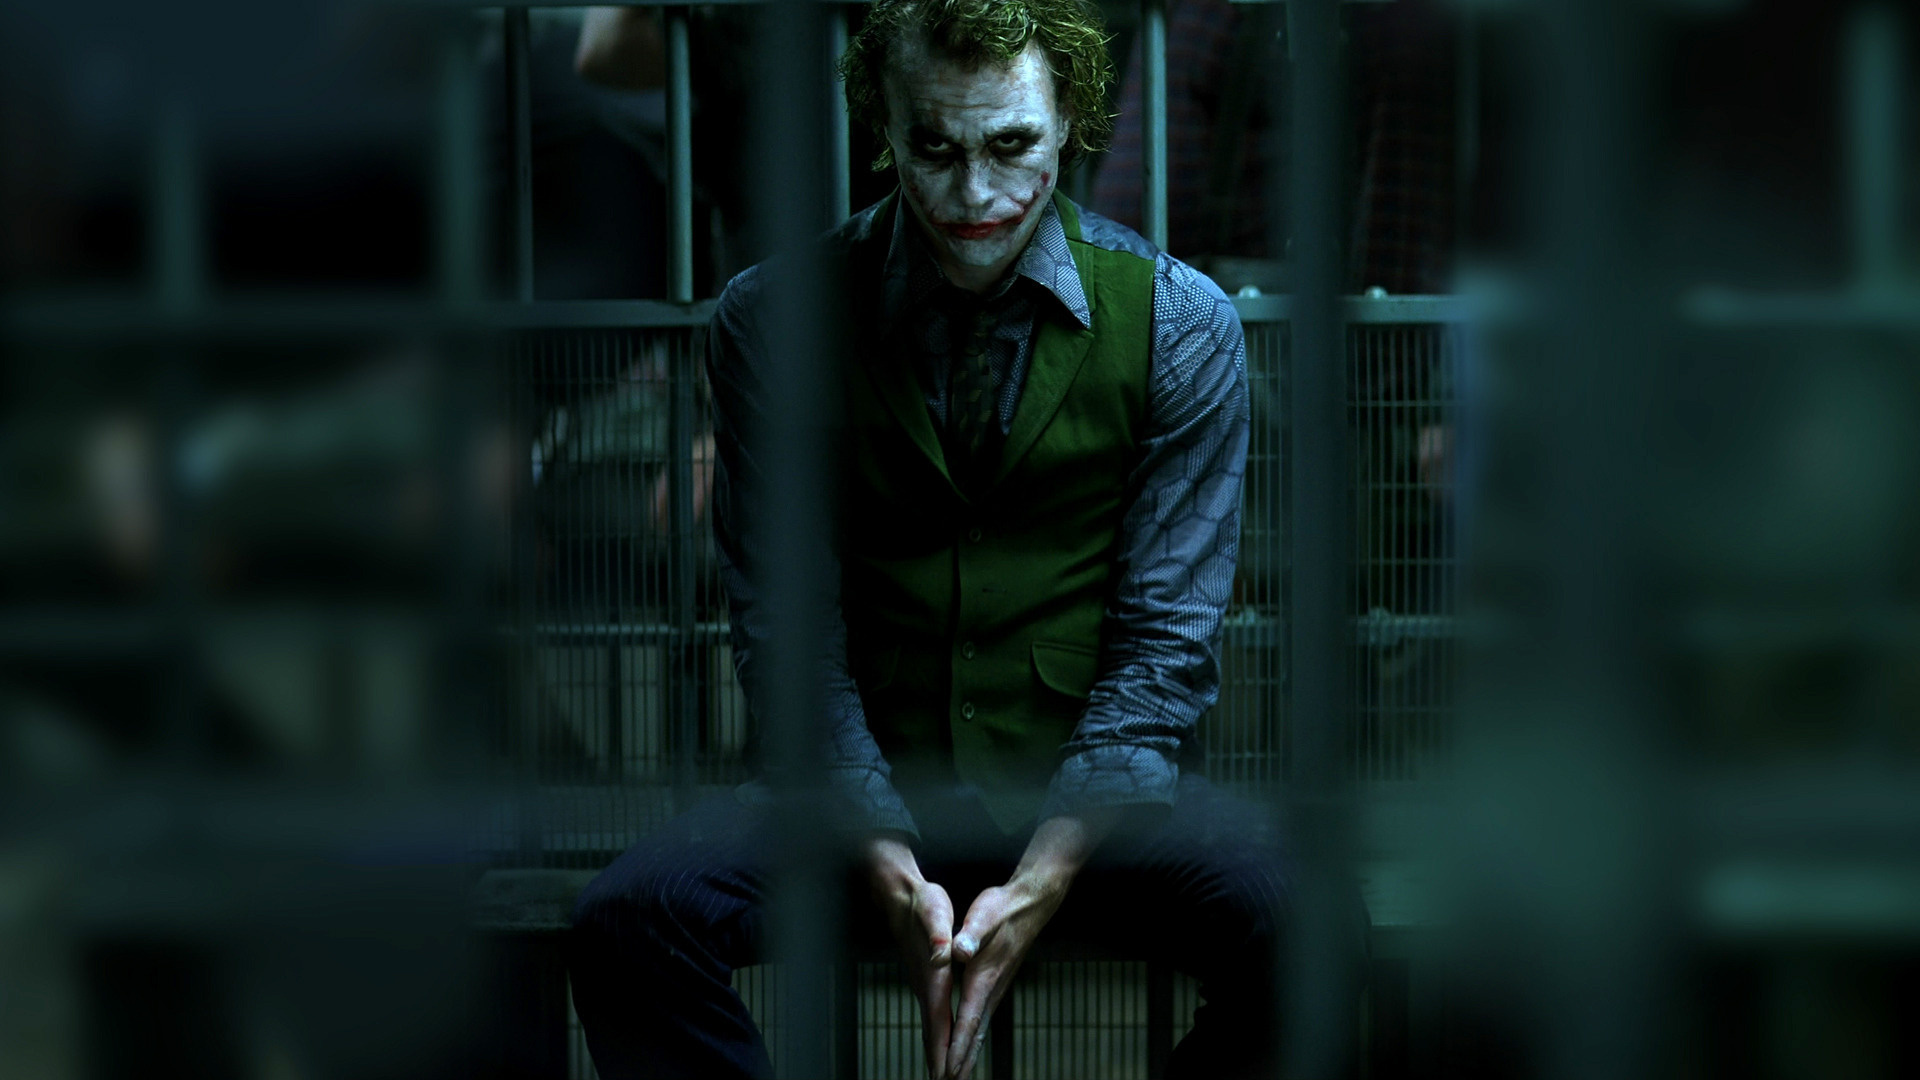 Joker Wallpaper Dark Knight Hd 1920x1080